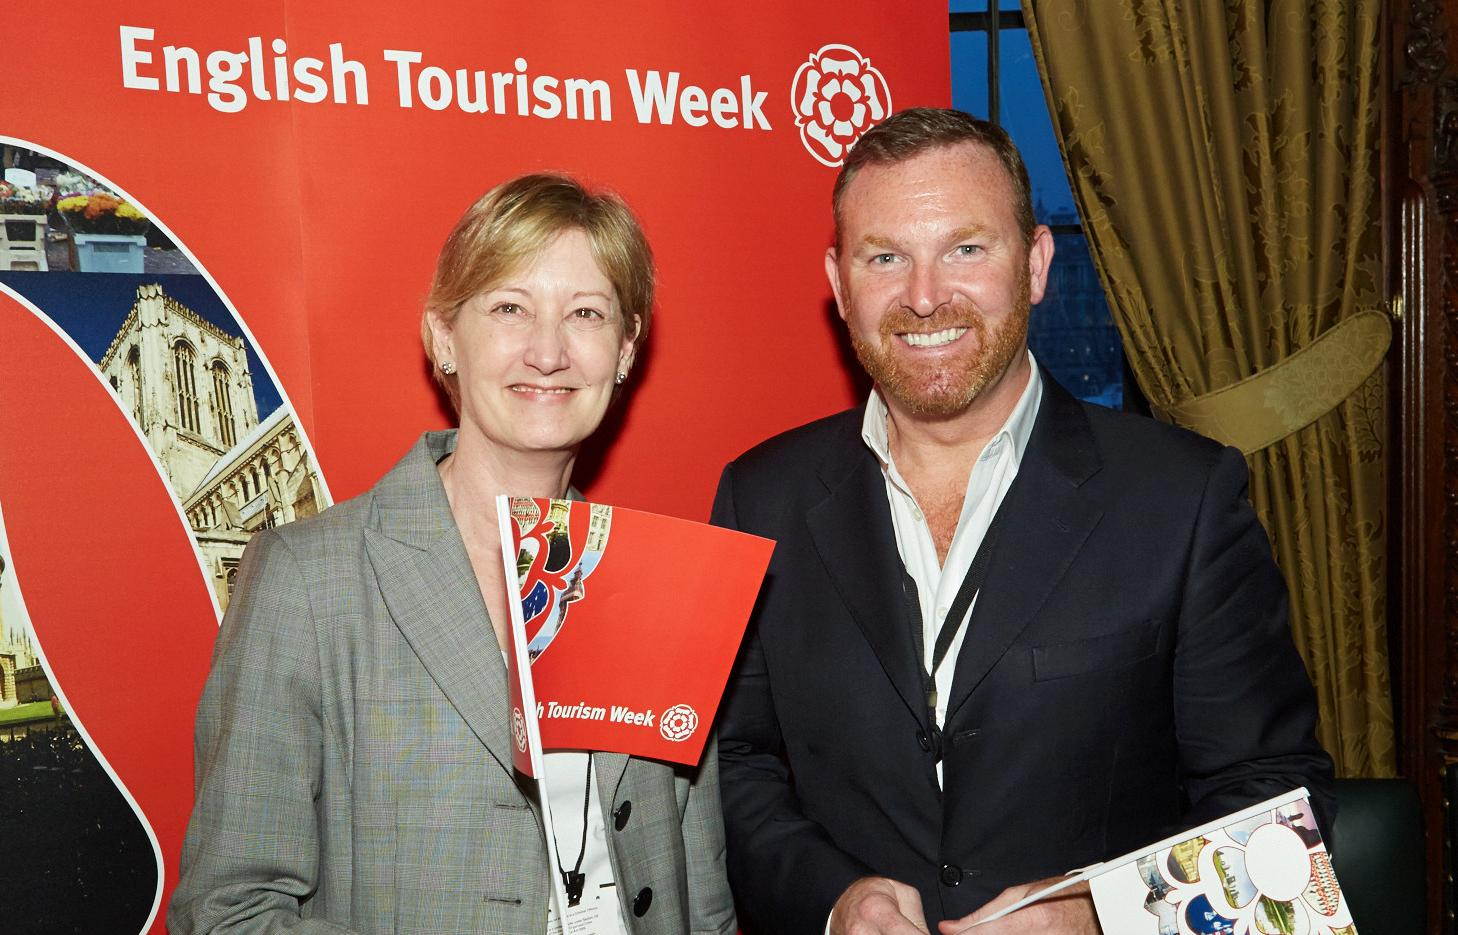 Donoghue, who also chairs the Tourism Alliance, takes up the role of ambassador for culture